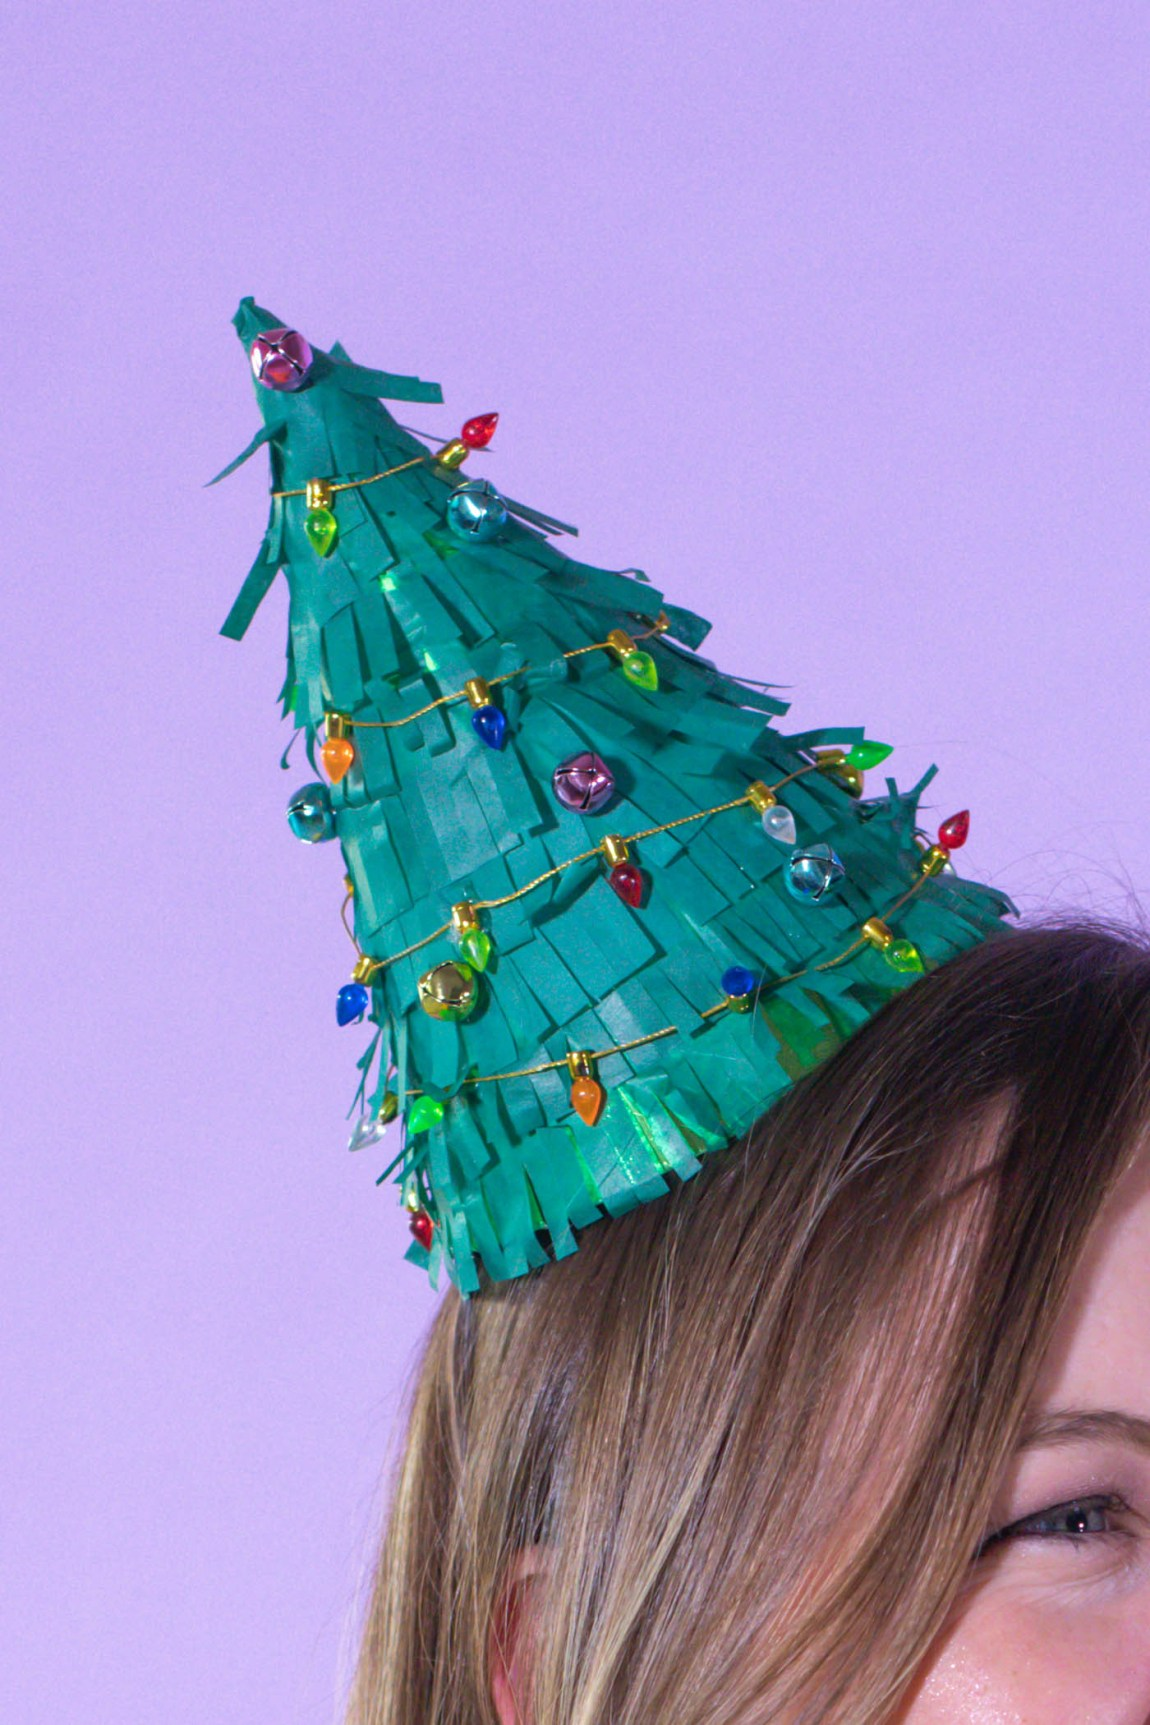 DIY Christmas Tree Party Hats // Turn a plain party hat into a fun holiday craft with tissue paper! Upcycle your hats into fringed Christmas trees decorated with lights and ornaments! #christmas #christmasdiy #christmascrafts #partydiy #partyideas #holidayparty #christmasparty #partyhats